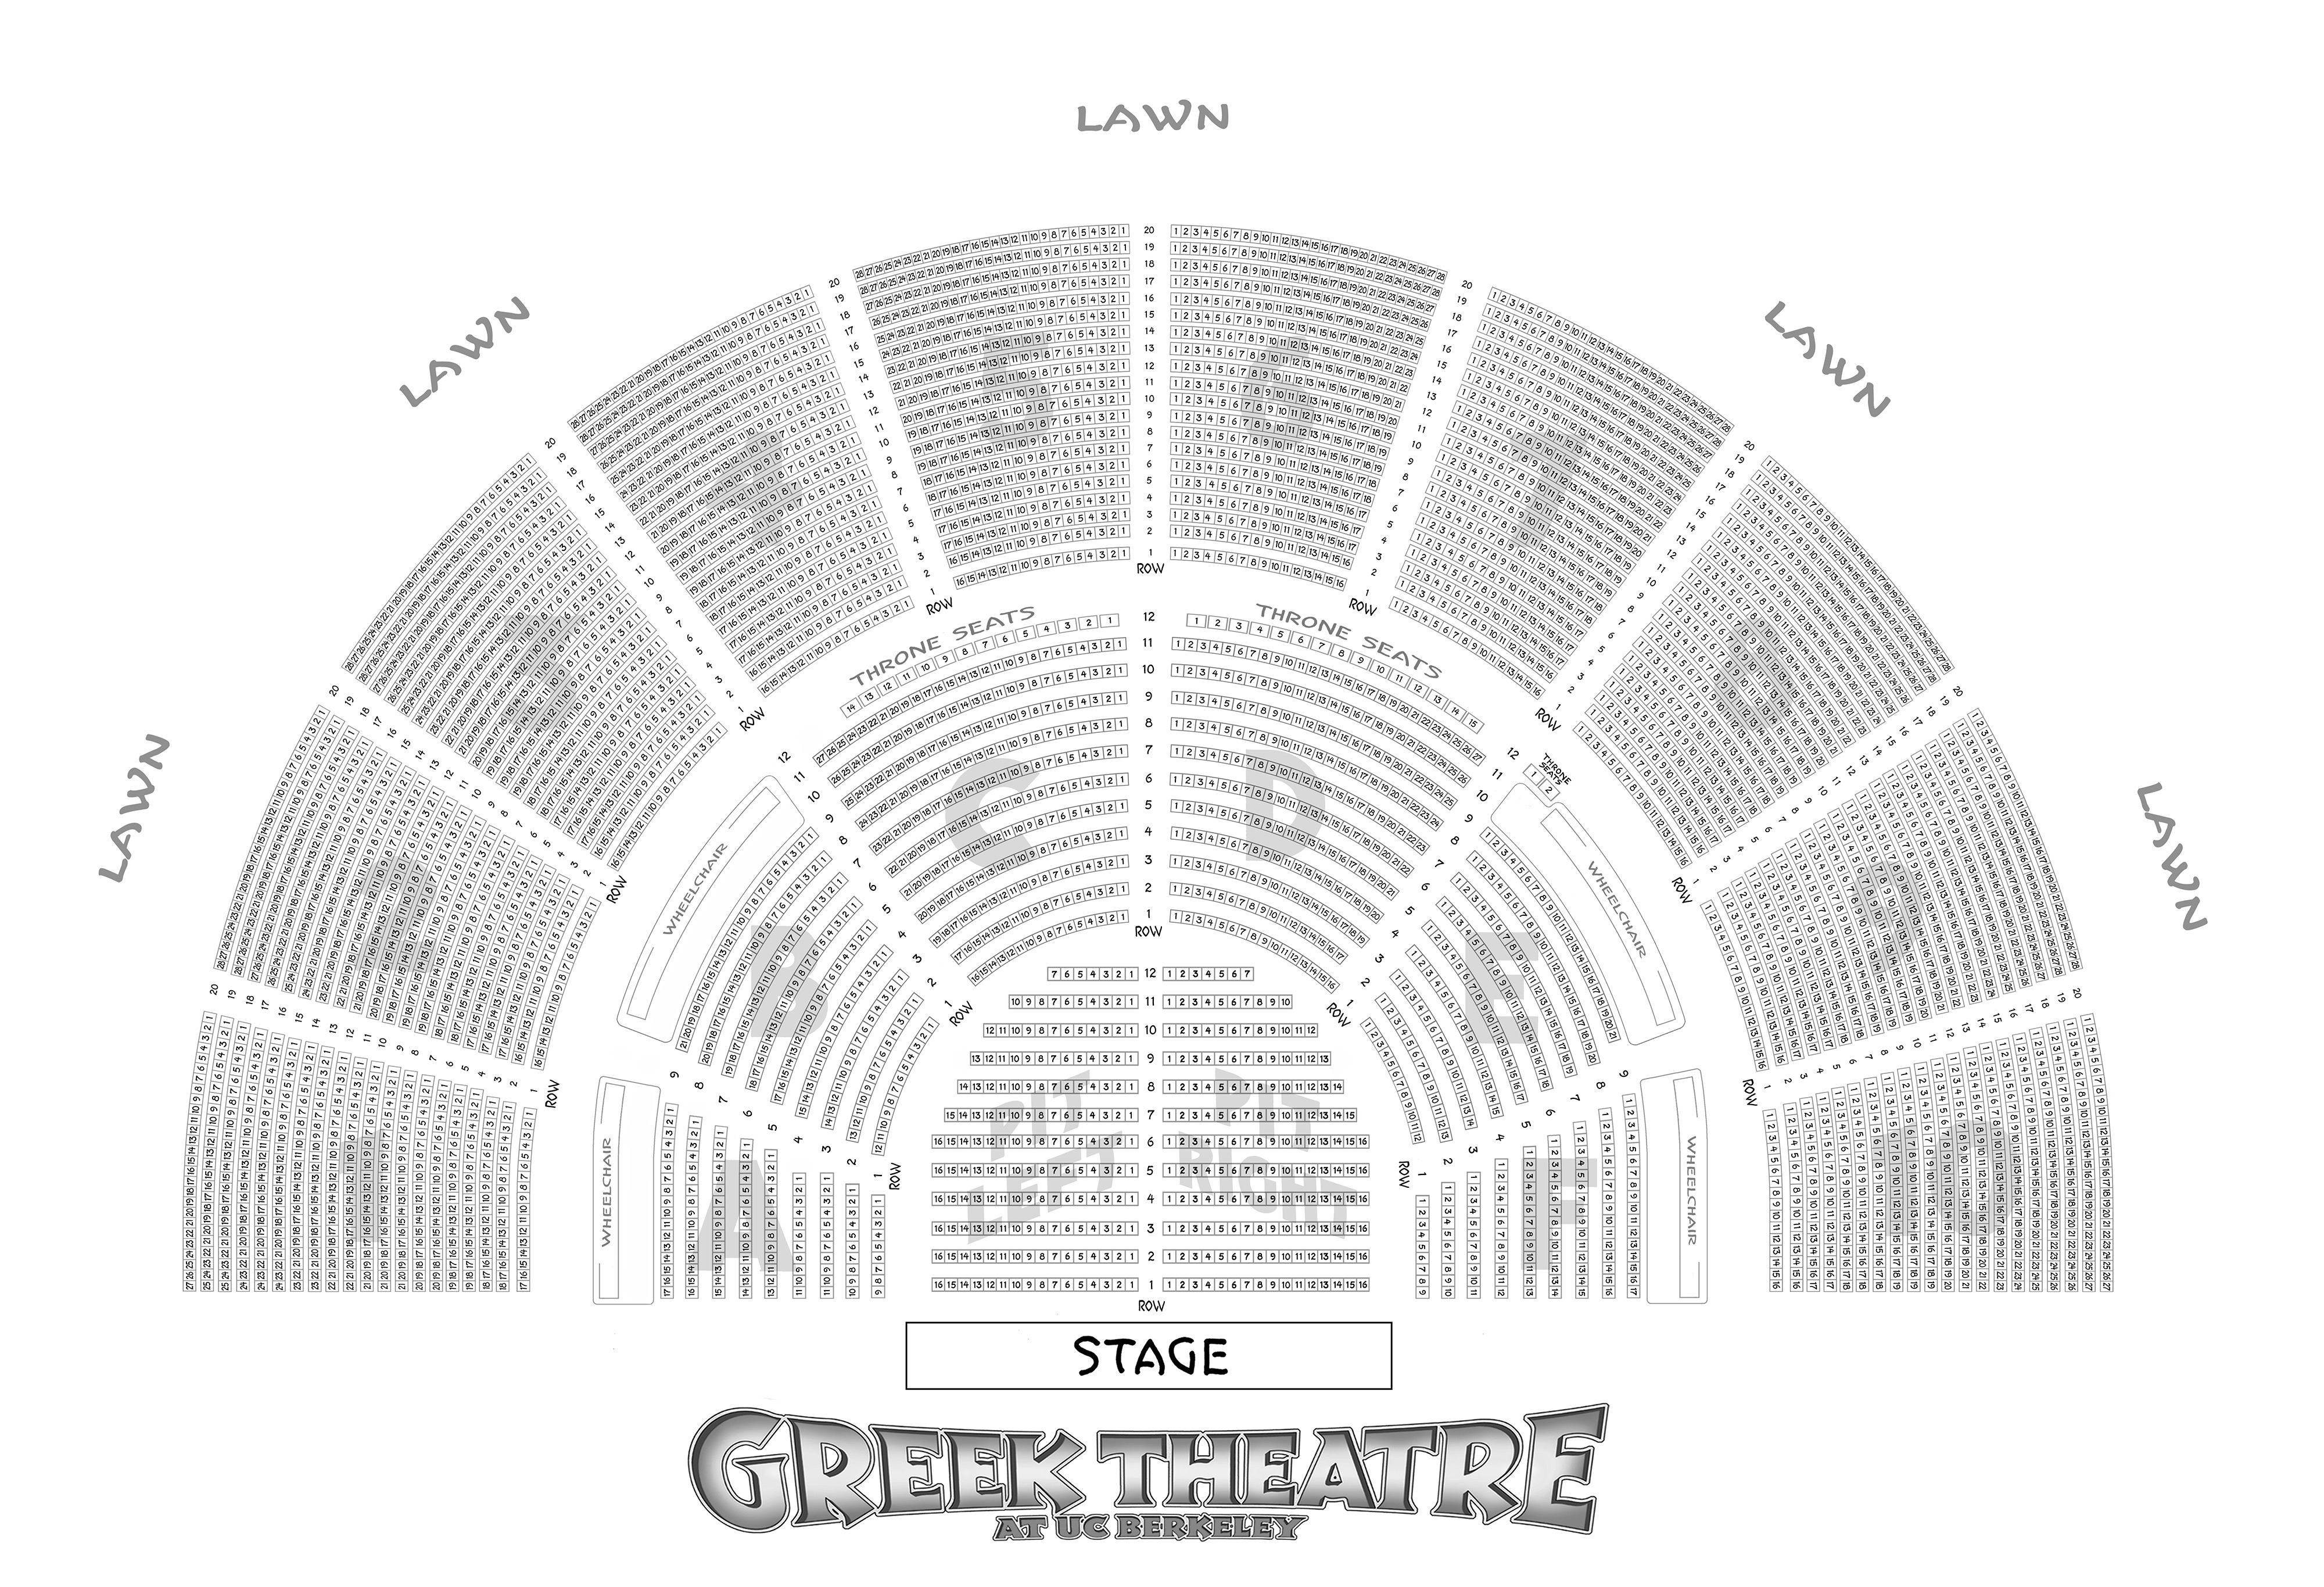 theater greek diagram 700r4 lockup kit wiring theatre venue information another planet